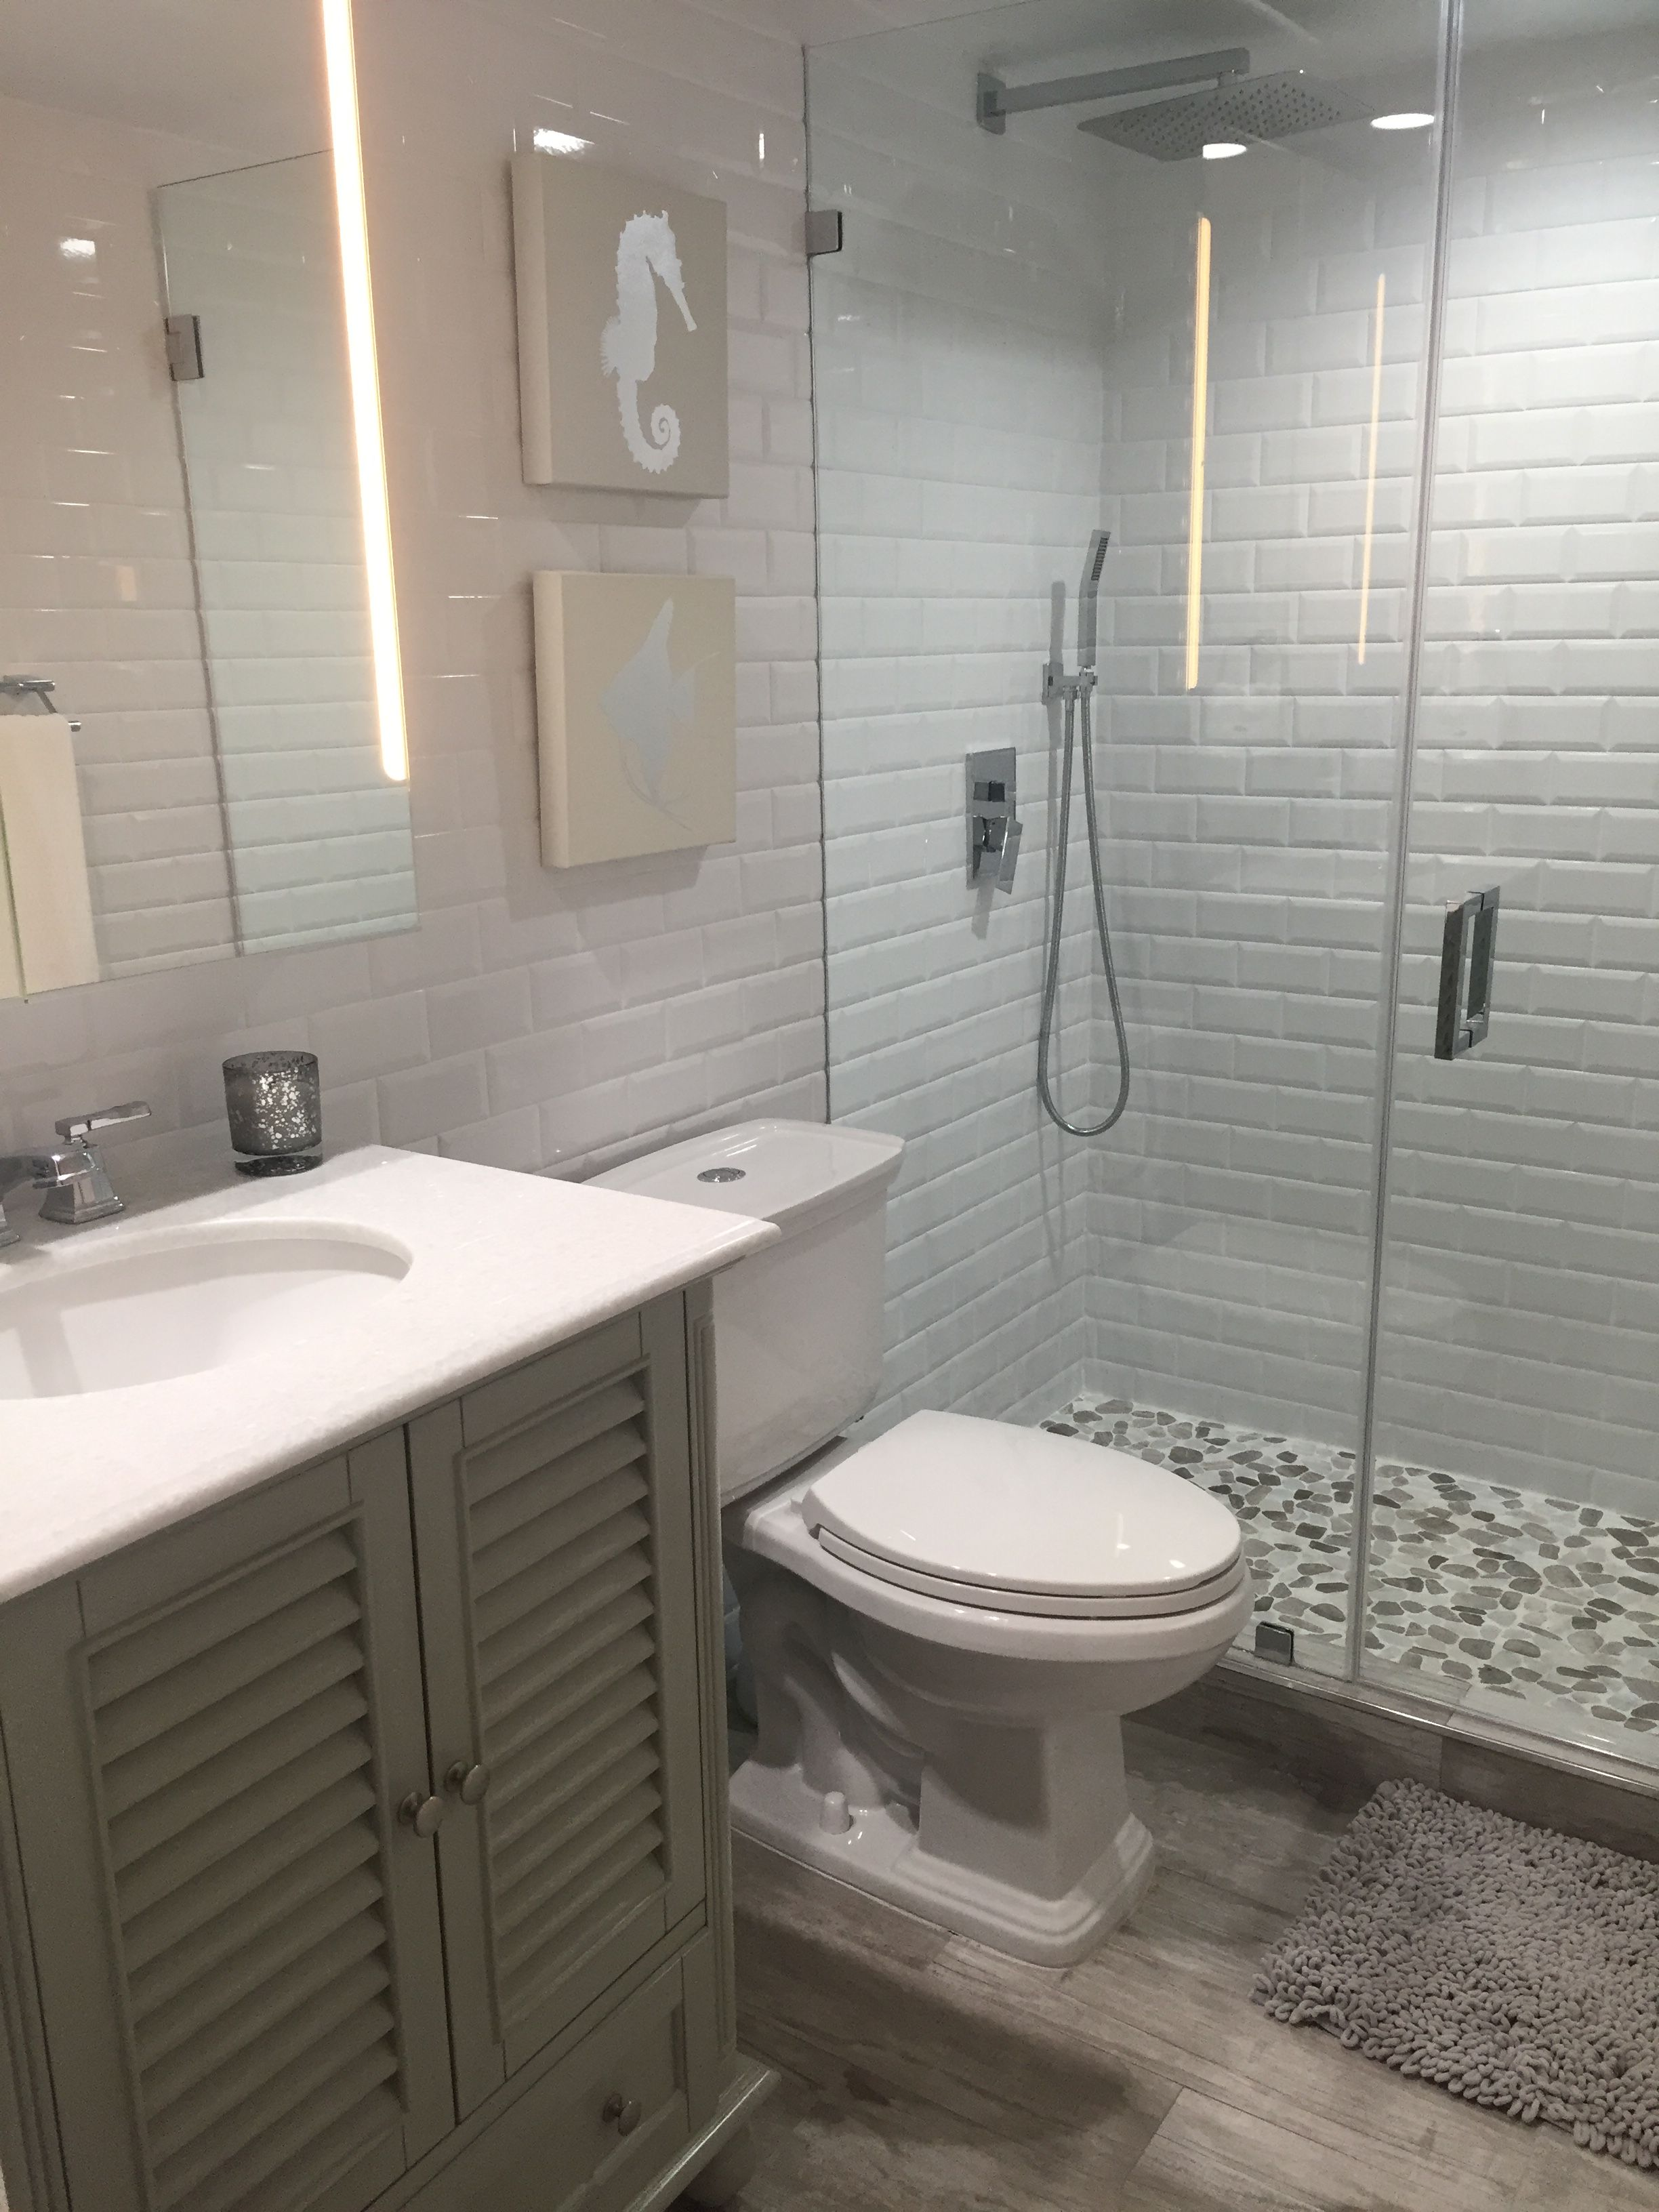 Bathroom ideas bathroom remodel condo bathroom remodel Small bathroom makeovers